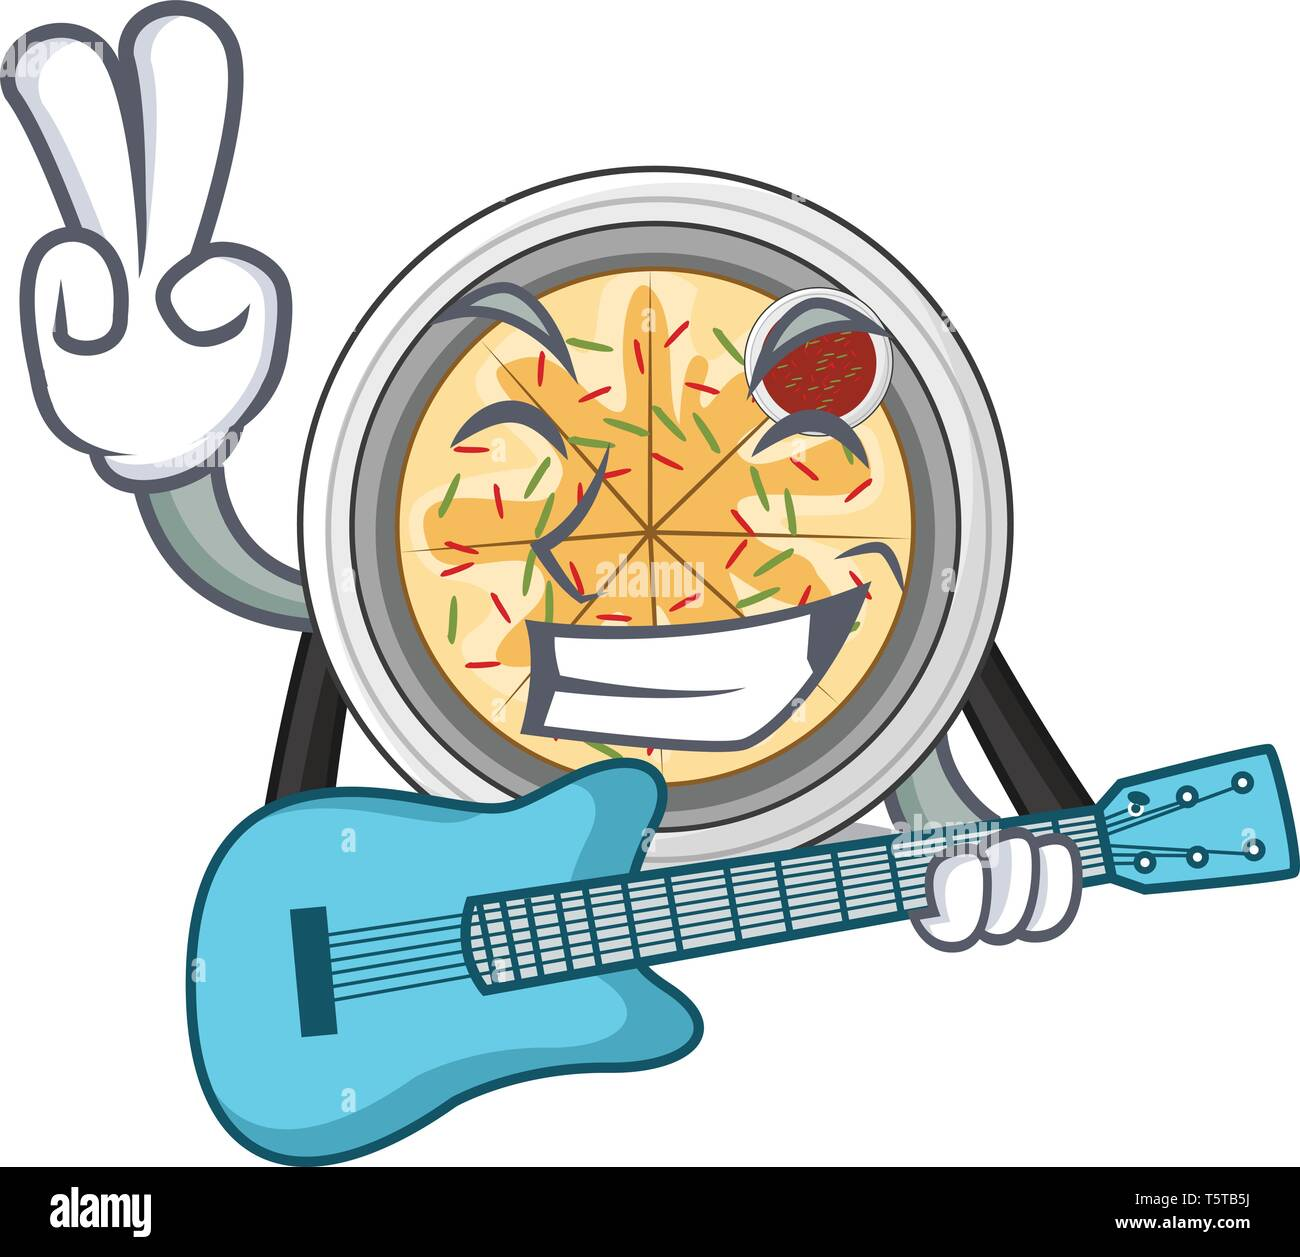 With guitar buchimgae isolated with in the mascot - Stock Vector